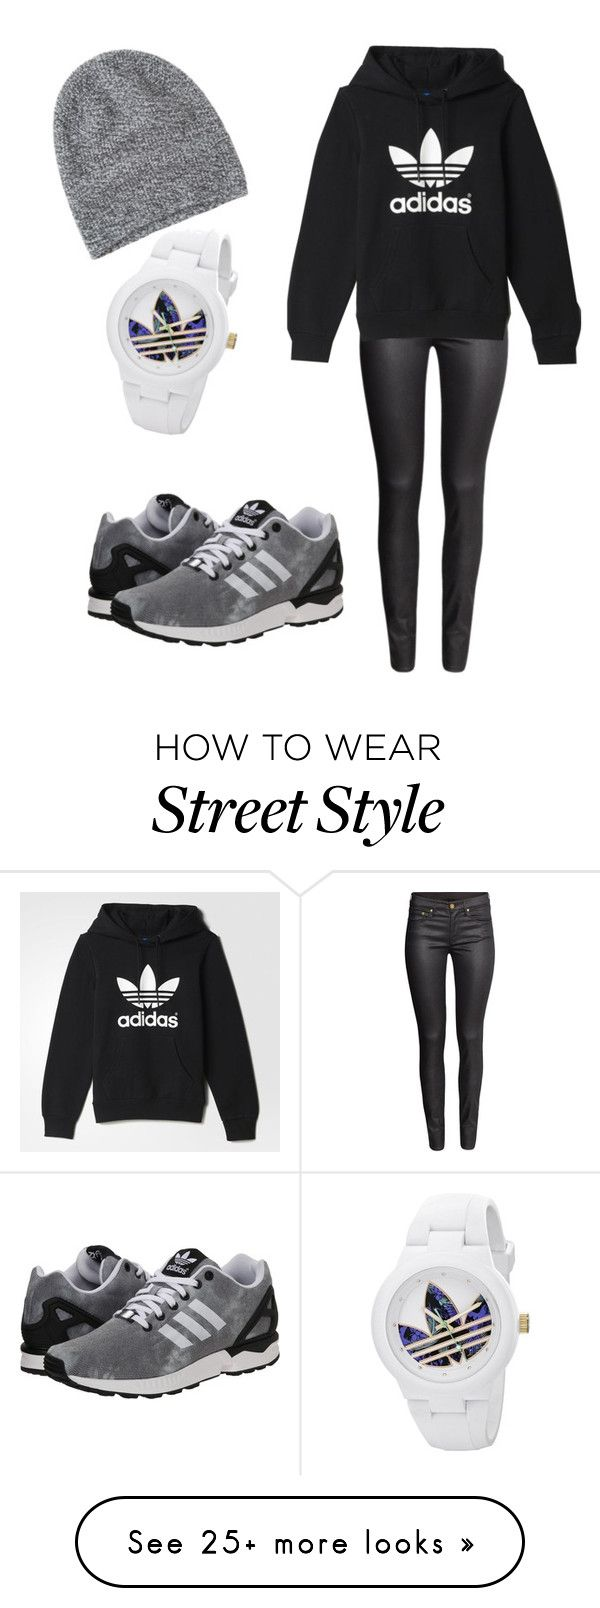 """Adidas street style"" by lautjo on Polyvore featuring H&M, adidas Originals, Toast and adidas"